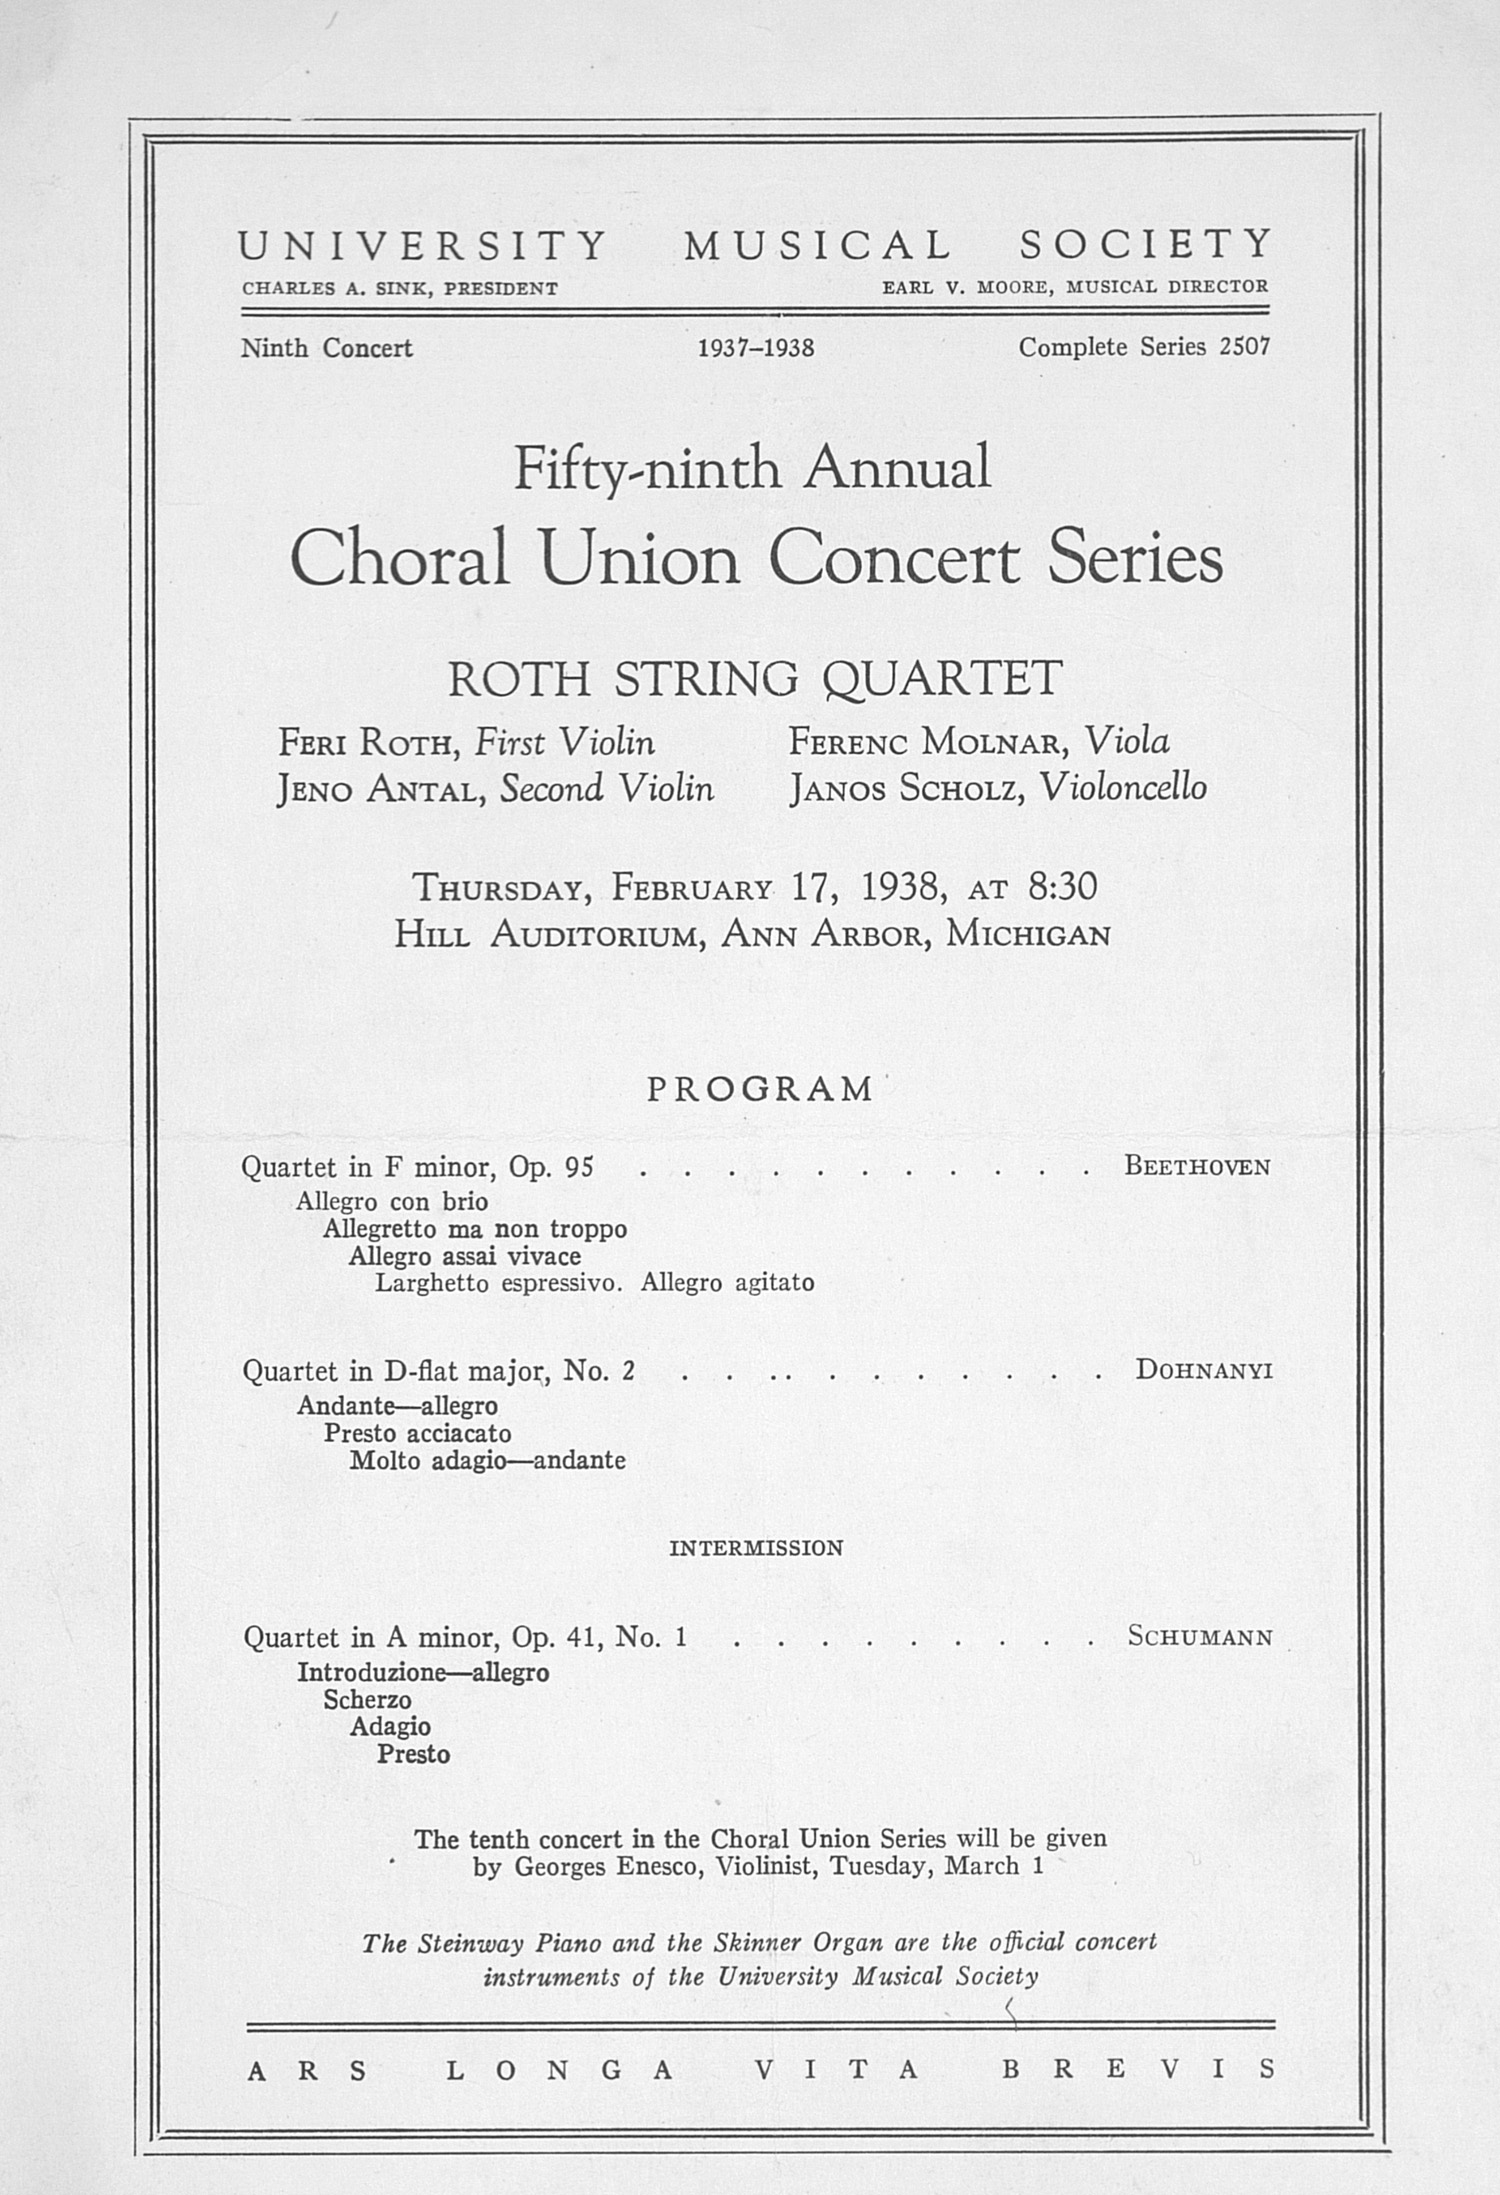 UMS Concert Program, February 17, 1938: Fifty-ninth Annual Choral Union Concert Series -- Roth String Quartet image